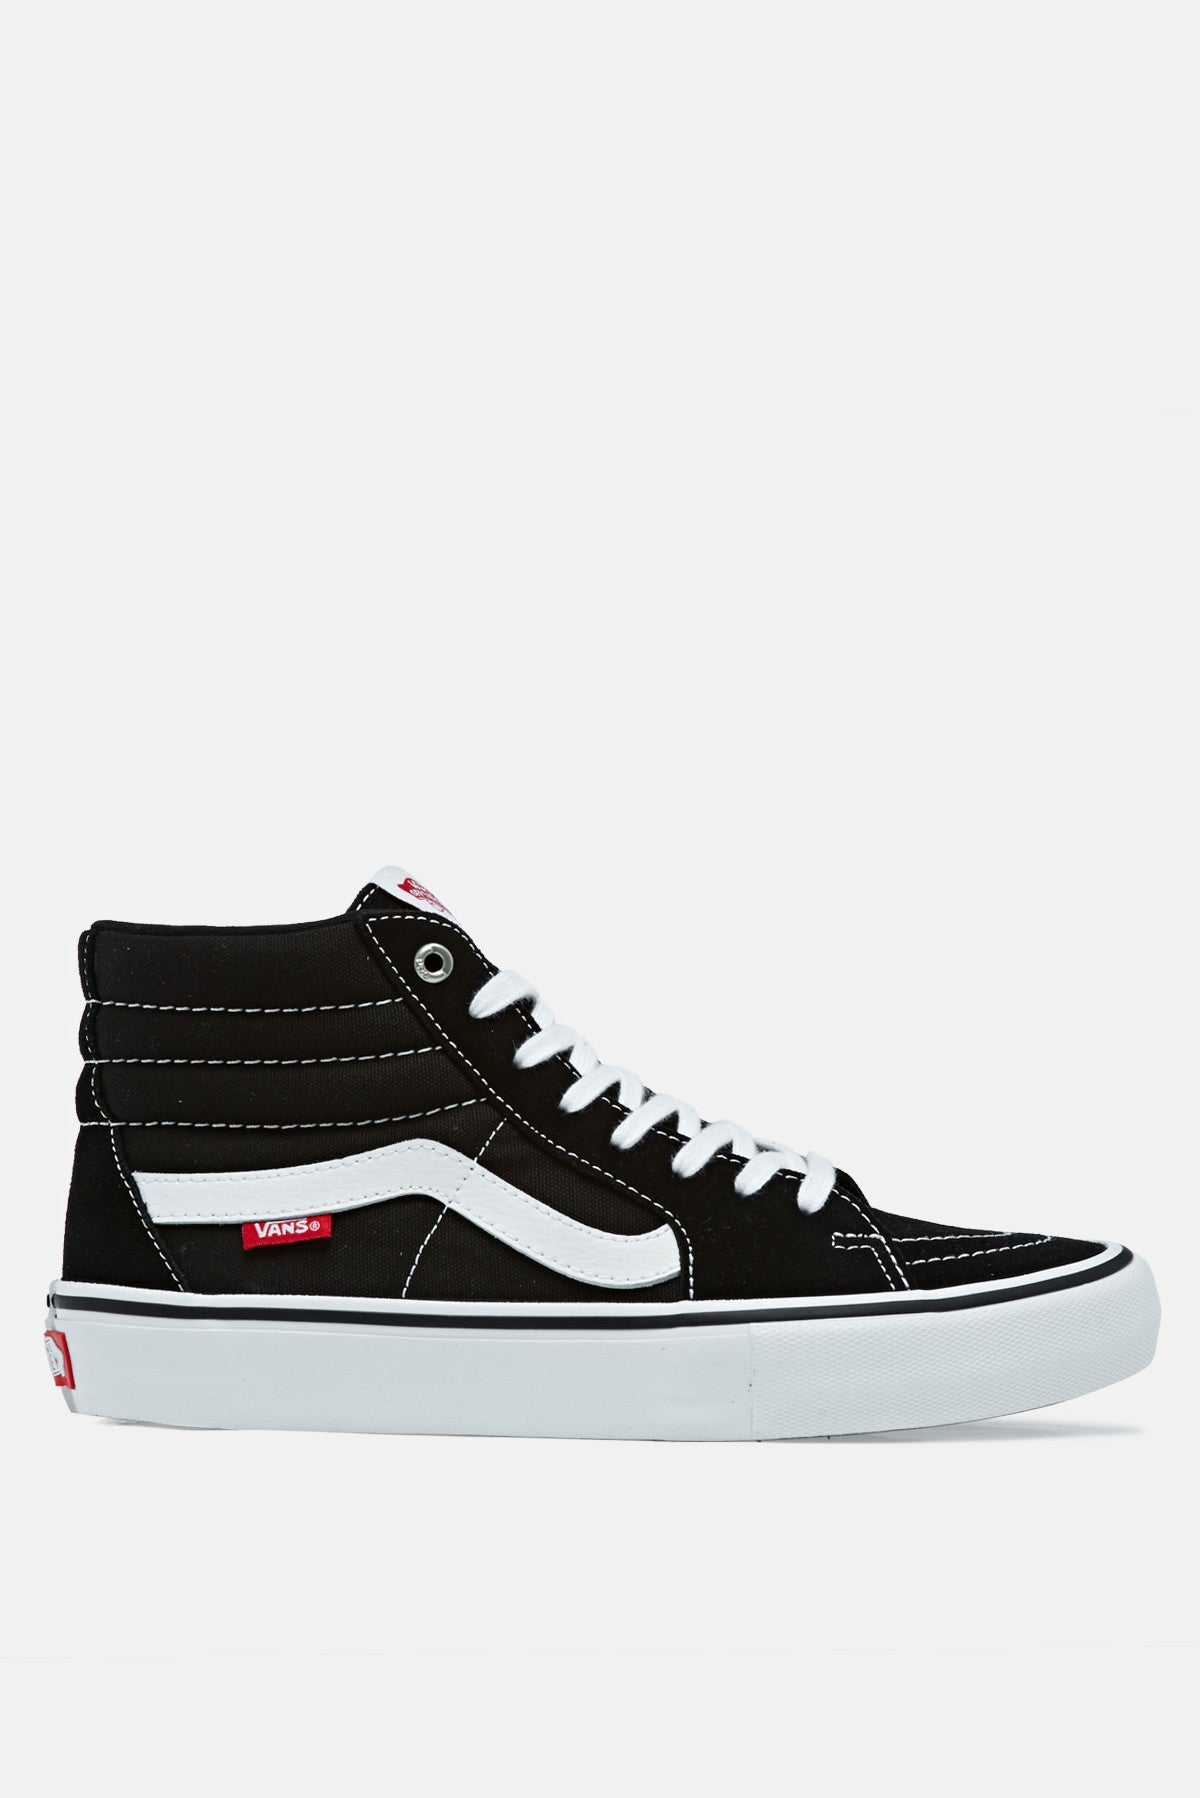 6f2a4355a4 Vans SK8 Hi Pro Shoes available from Priory